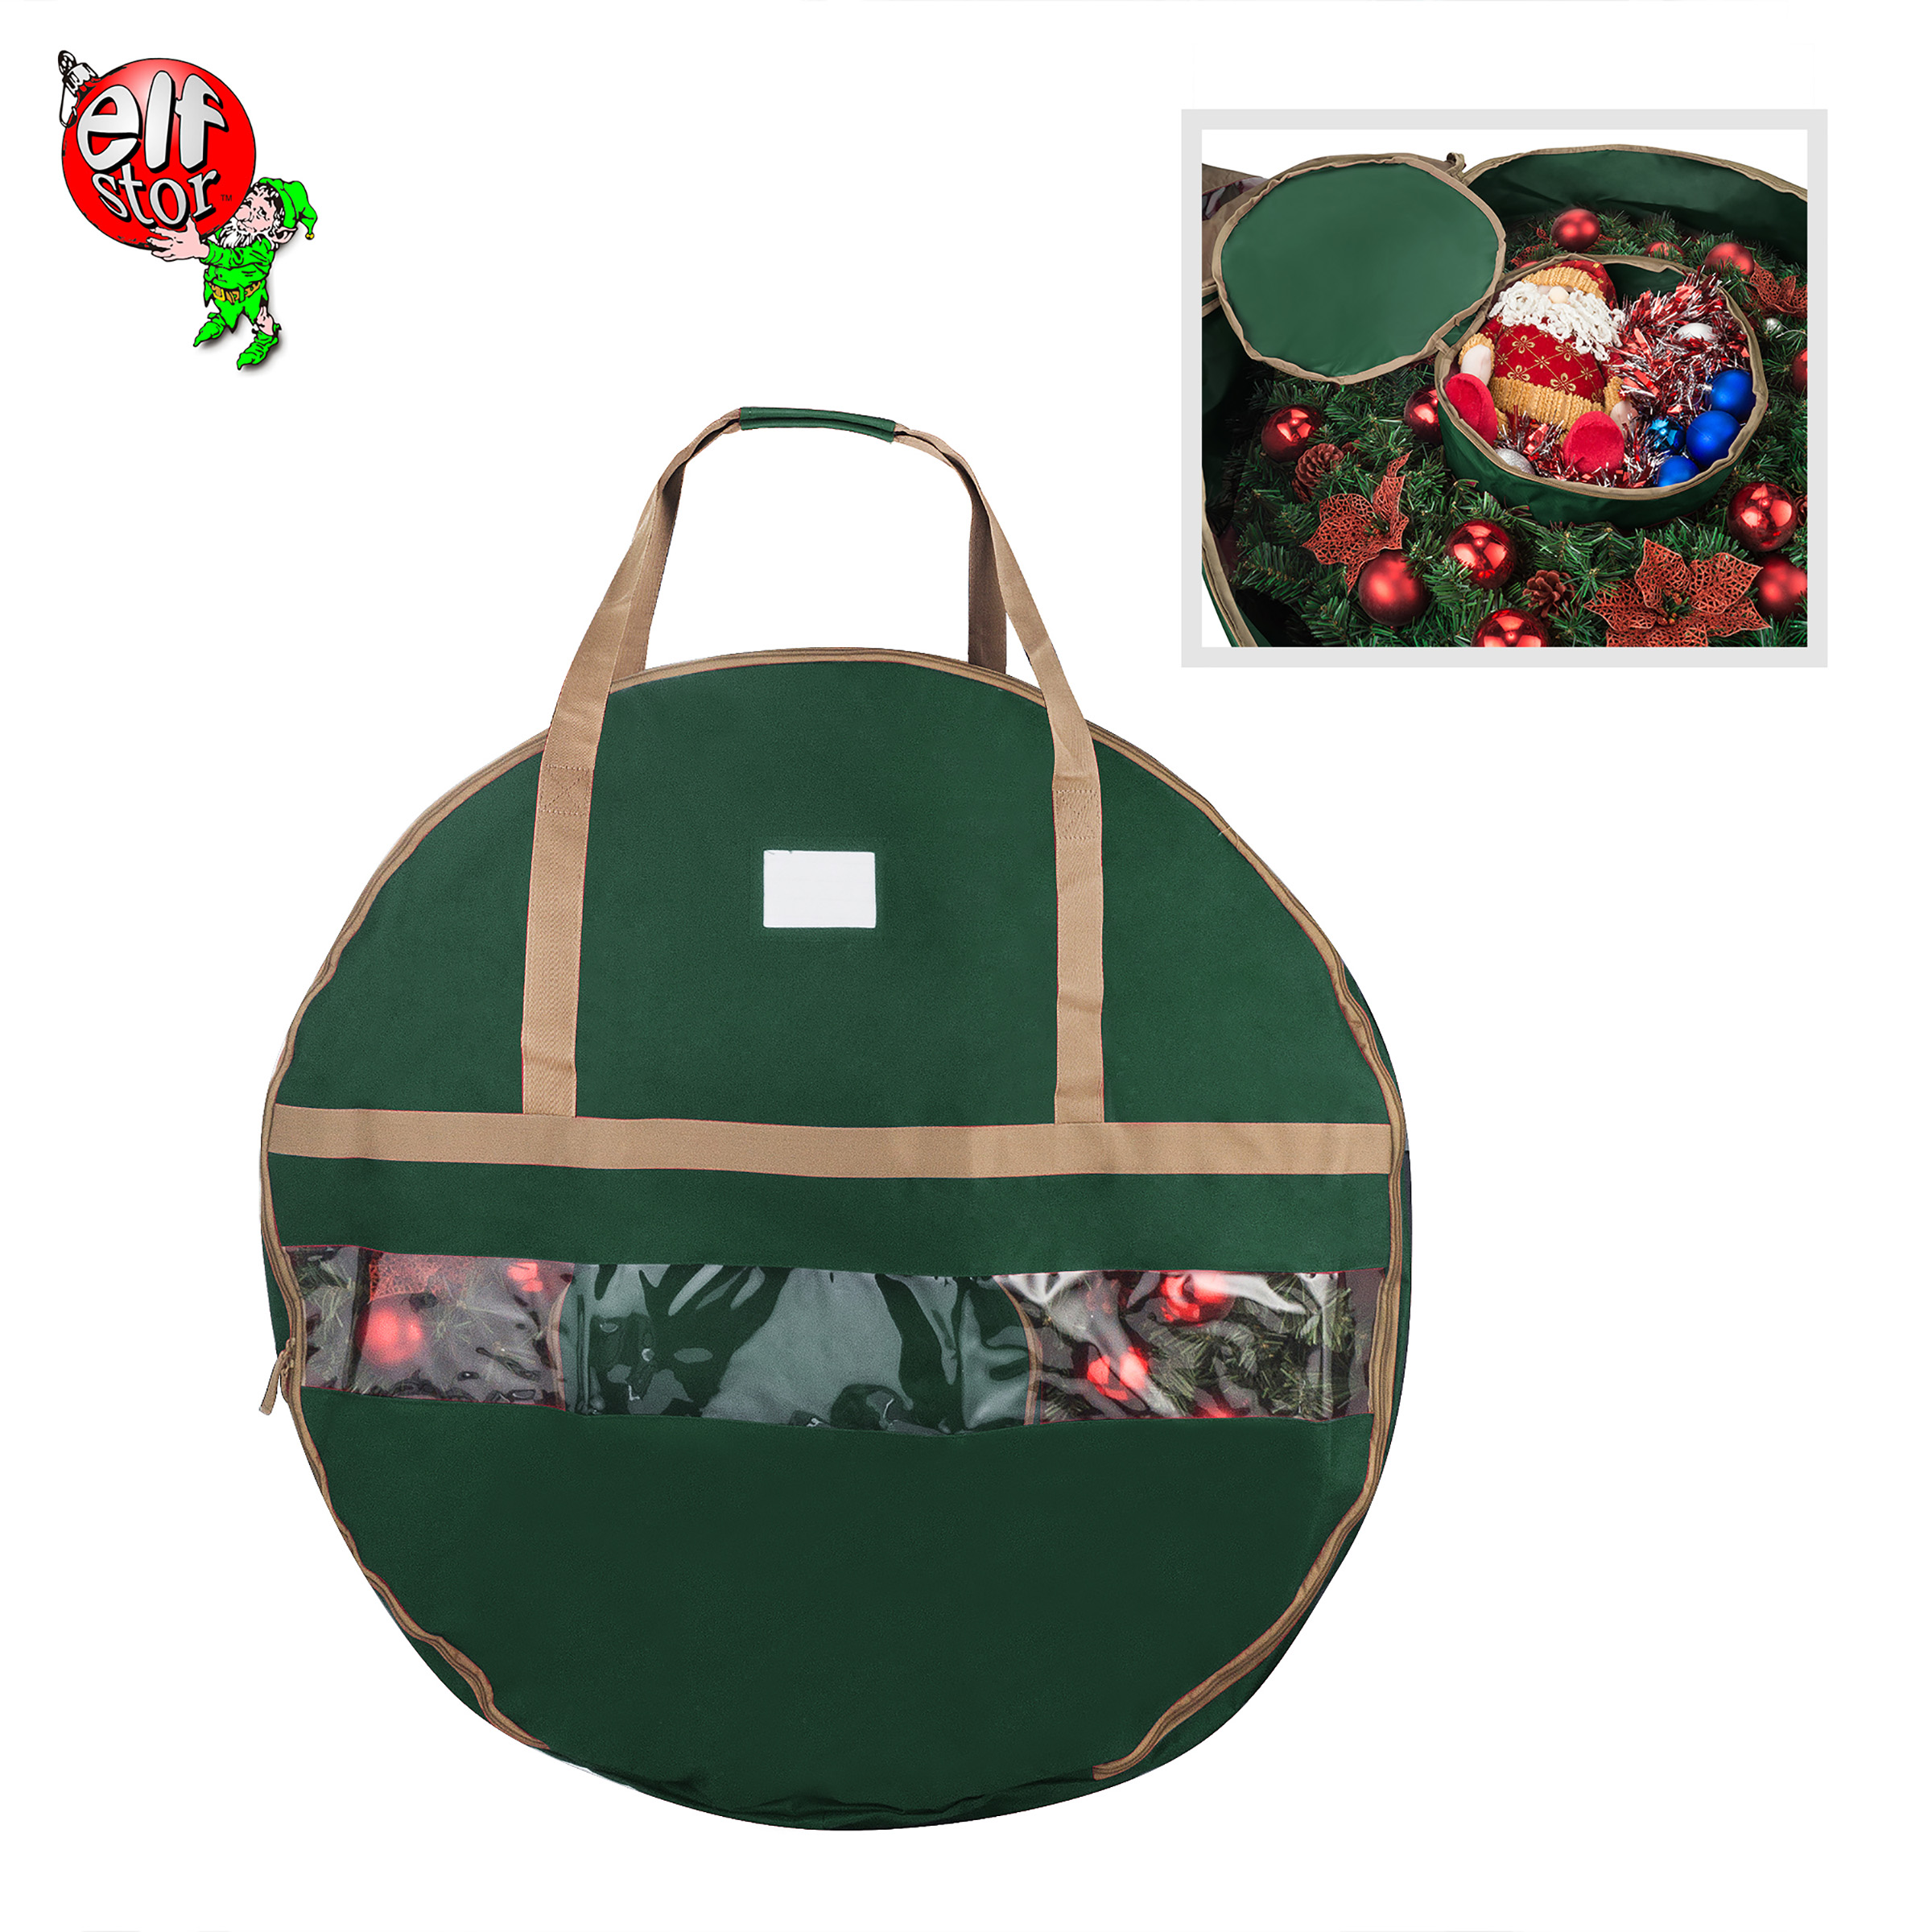 "Elf Stor Ultimate Green Holiday Christmas Wreath Storage Bag For 24"" Inch Wreaths"